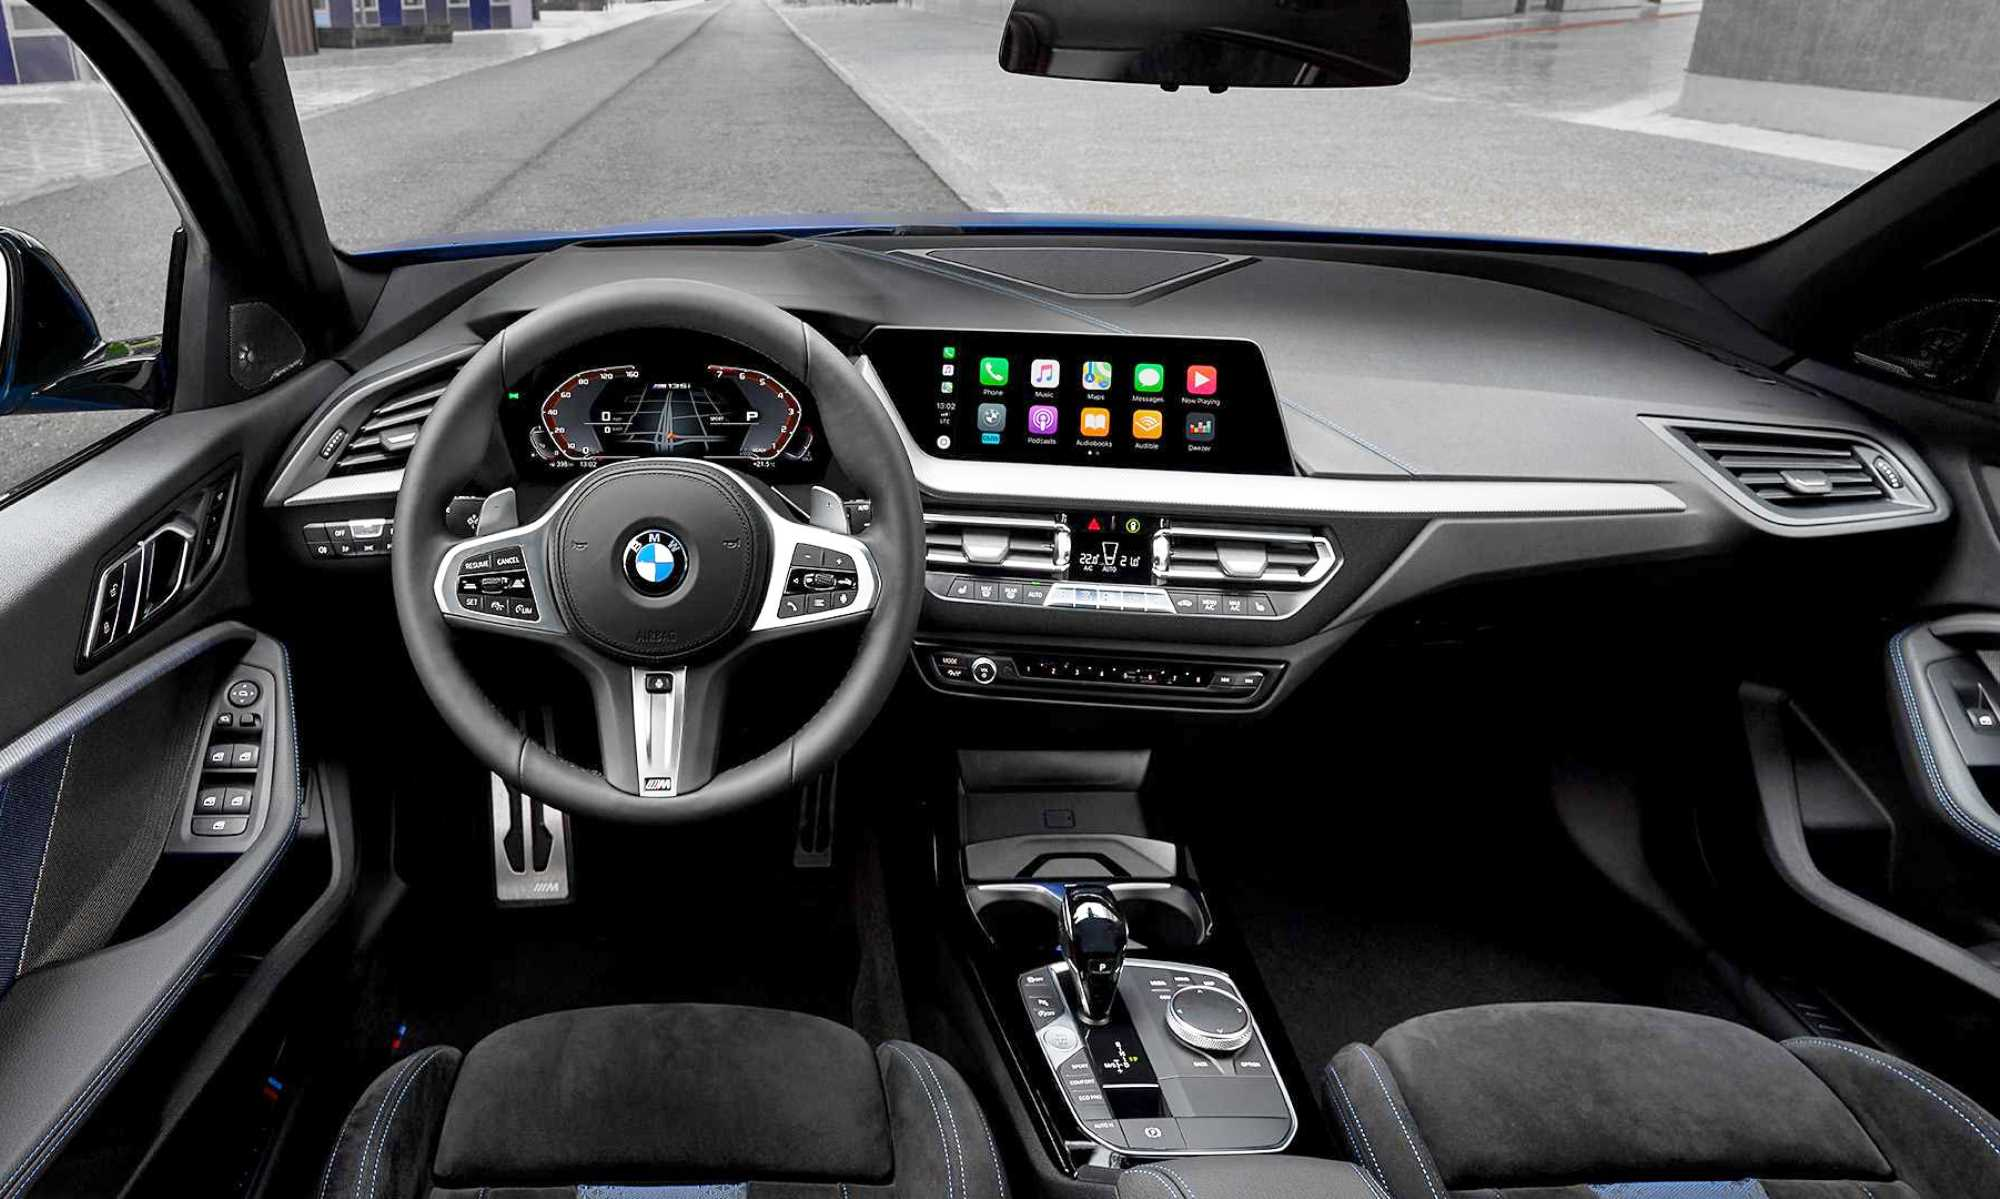 BMW M135i hatchback interior